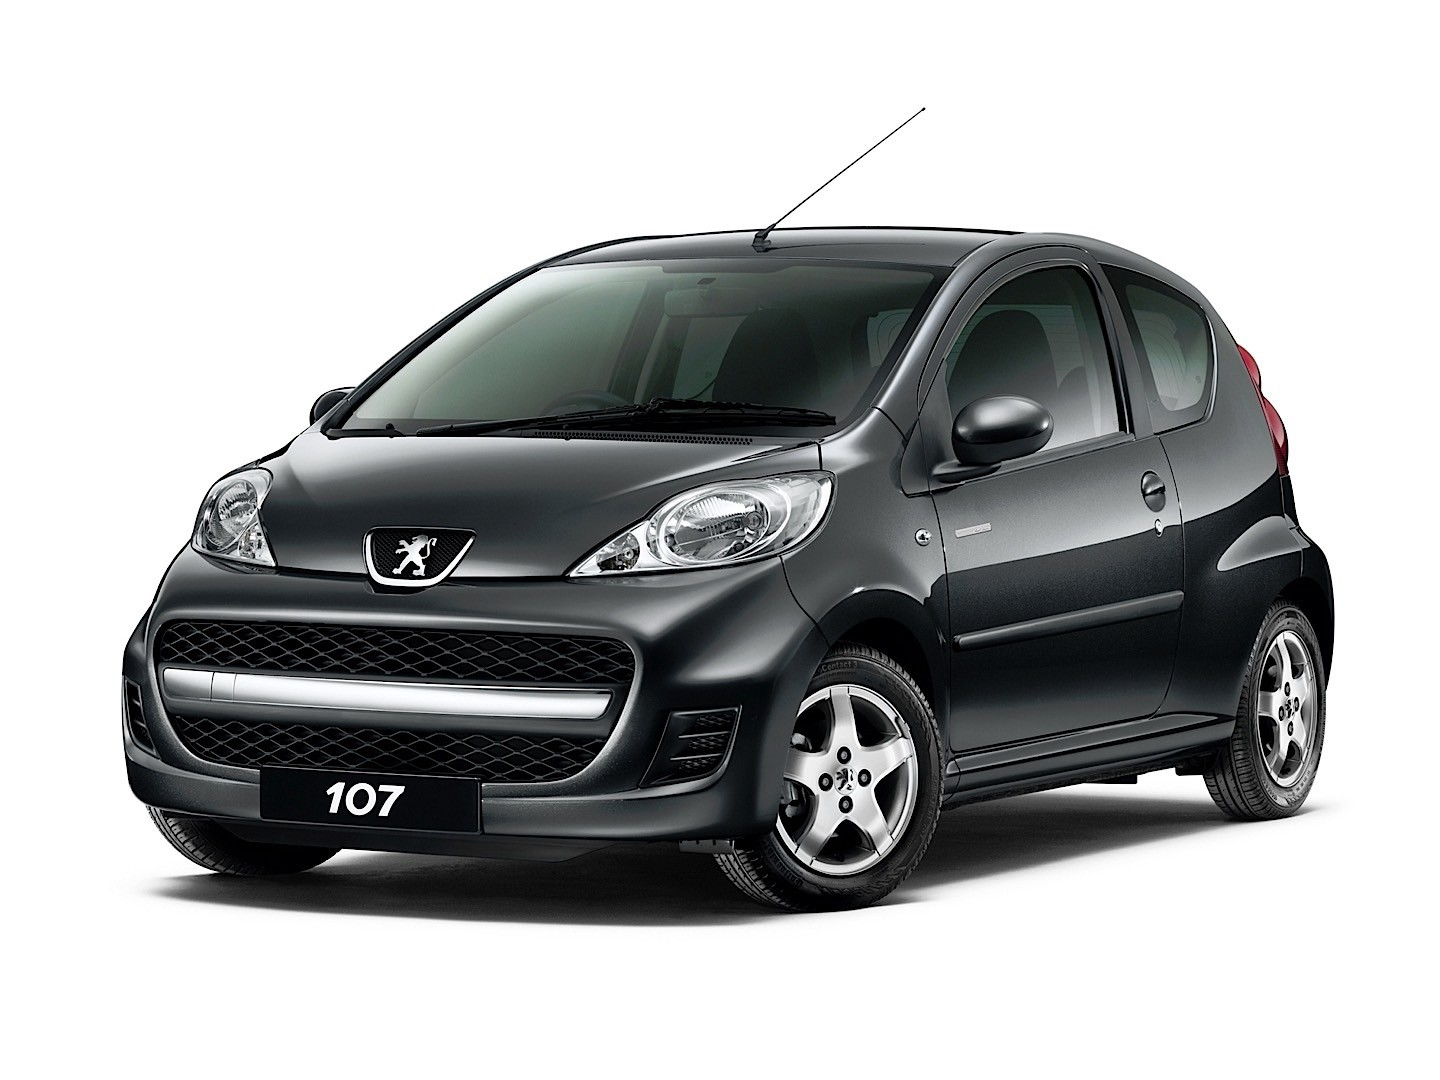 peugeot 107 3 doors specs 2008 2009 2010 2011 2012 2013 2014 autoevolution. Black Bedroom Furniture Sets. Home Design Ideas